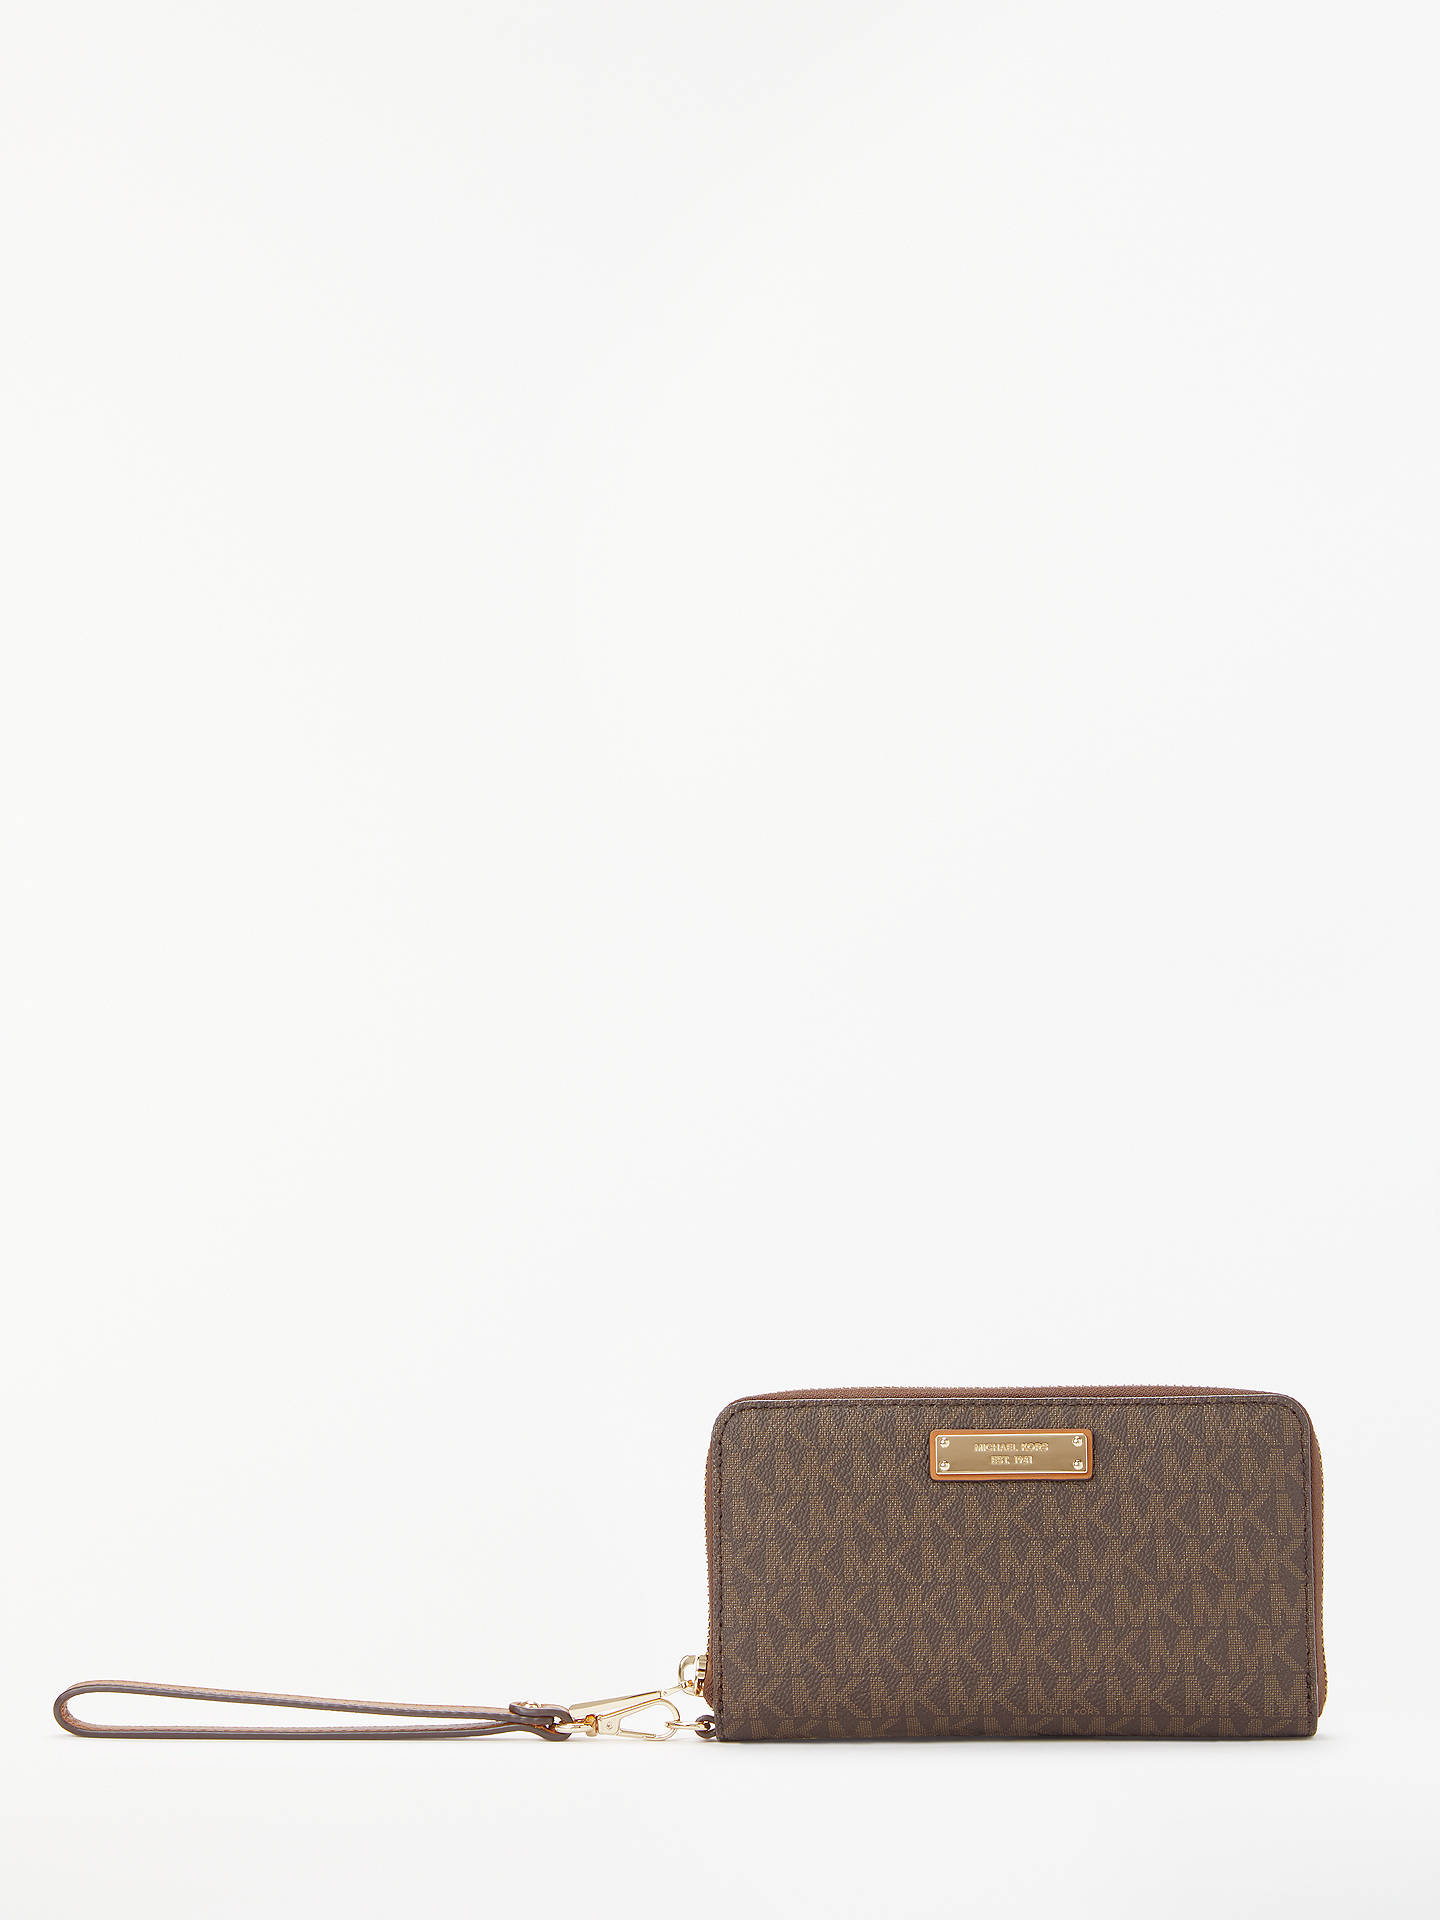 Buy MICHAEL Michael Kors Jet Set Signature Travel iPhone Case Purse, Brown Online at johnlewis.com